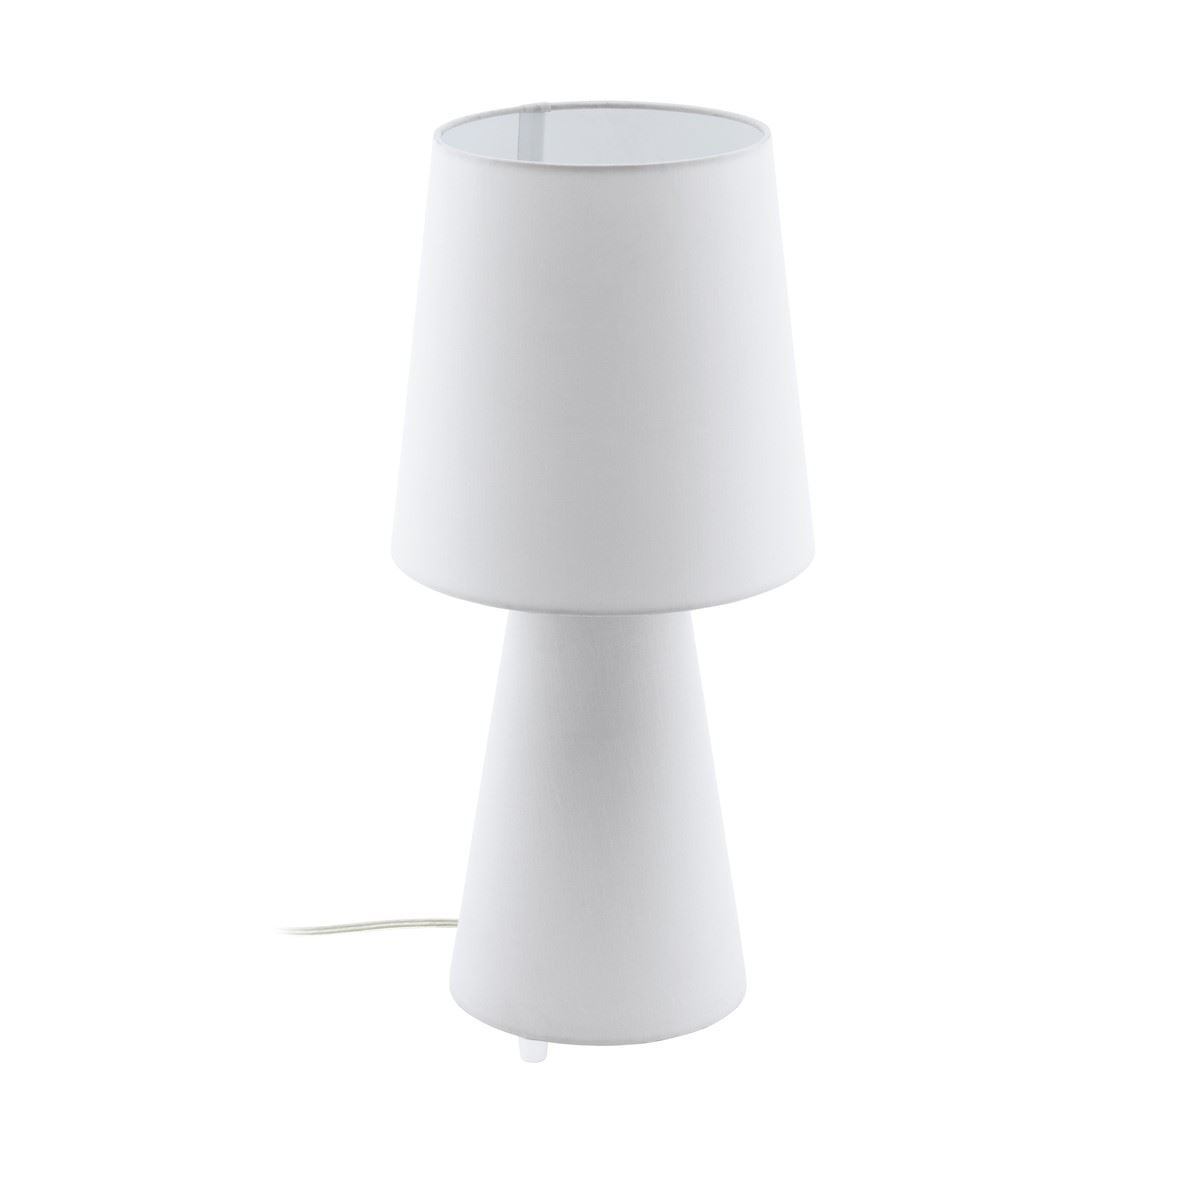 White Fabric Table Lamp With Shade For Bedside Table, In Line Switch